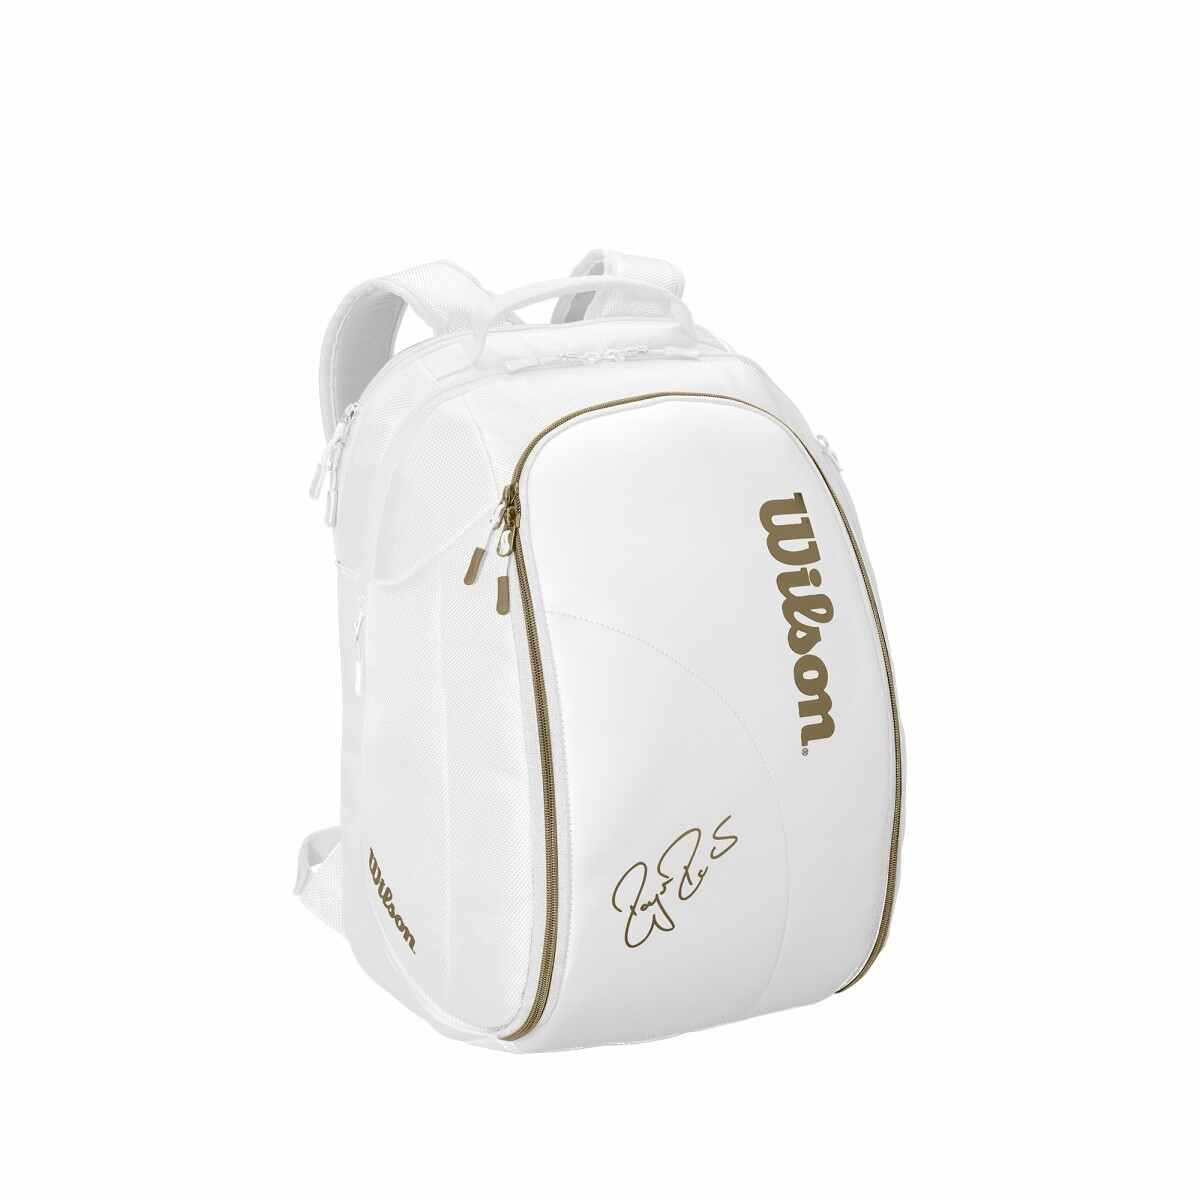 975d76f0fae724c7a8f200d6719b11fbe9774478_WR8004501_Federer_DNA_Backpack_White_Gold_Front